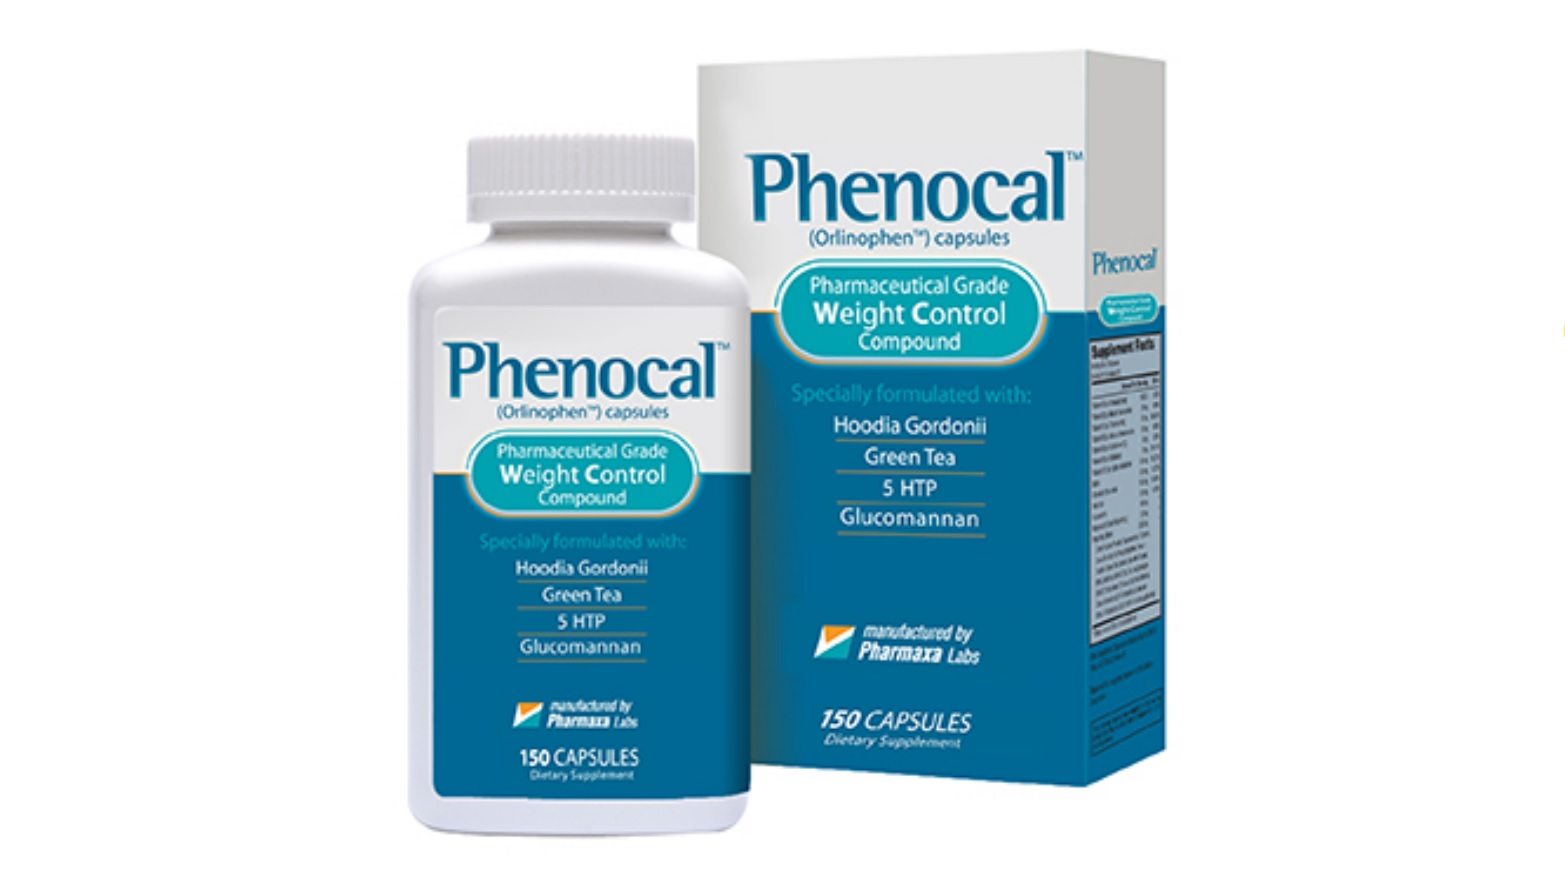 Phenocal Diet Pill: Does It Work To Lose Weight Effectively?